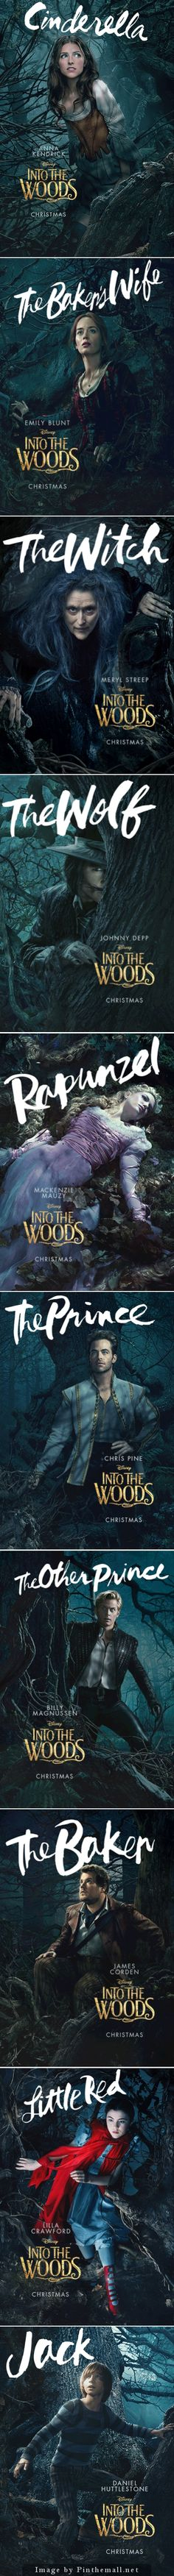 InTo The Woods Posters